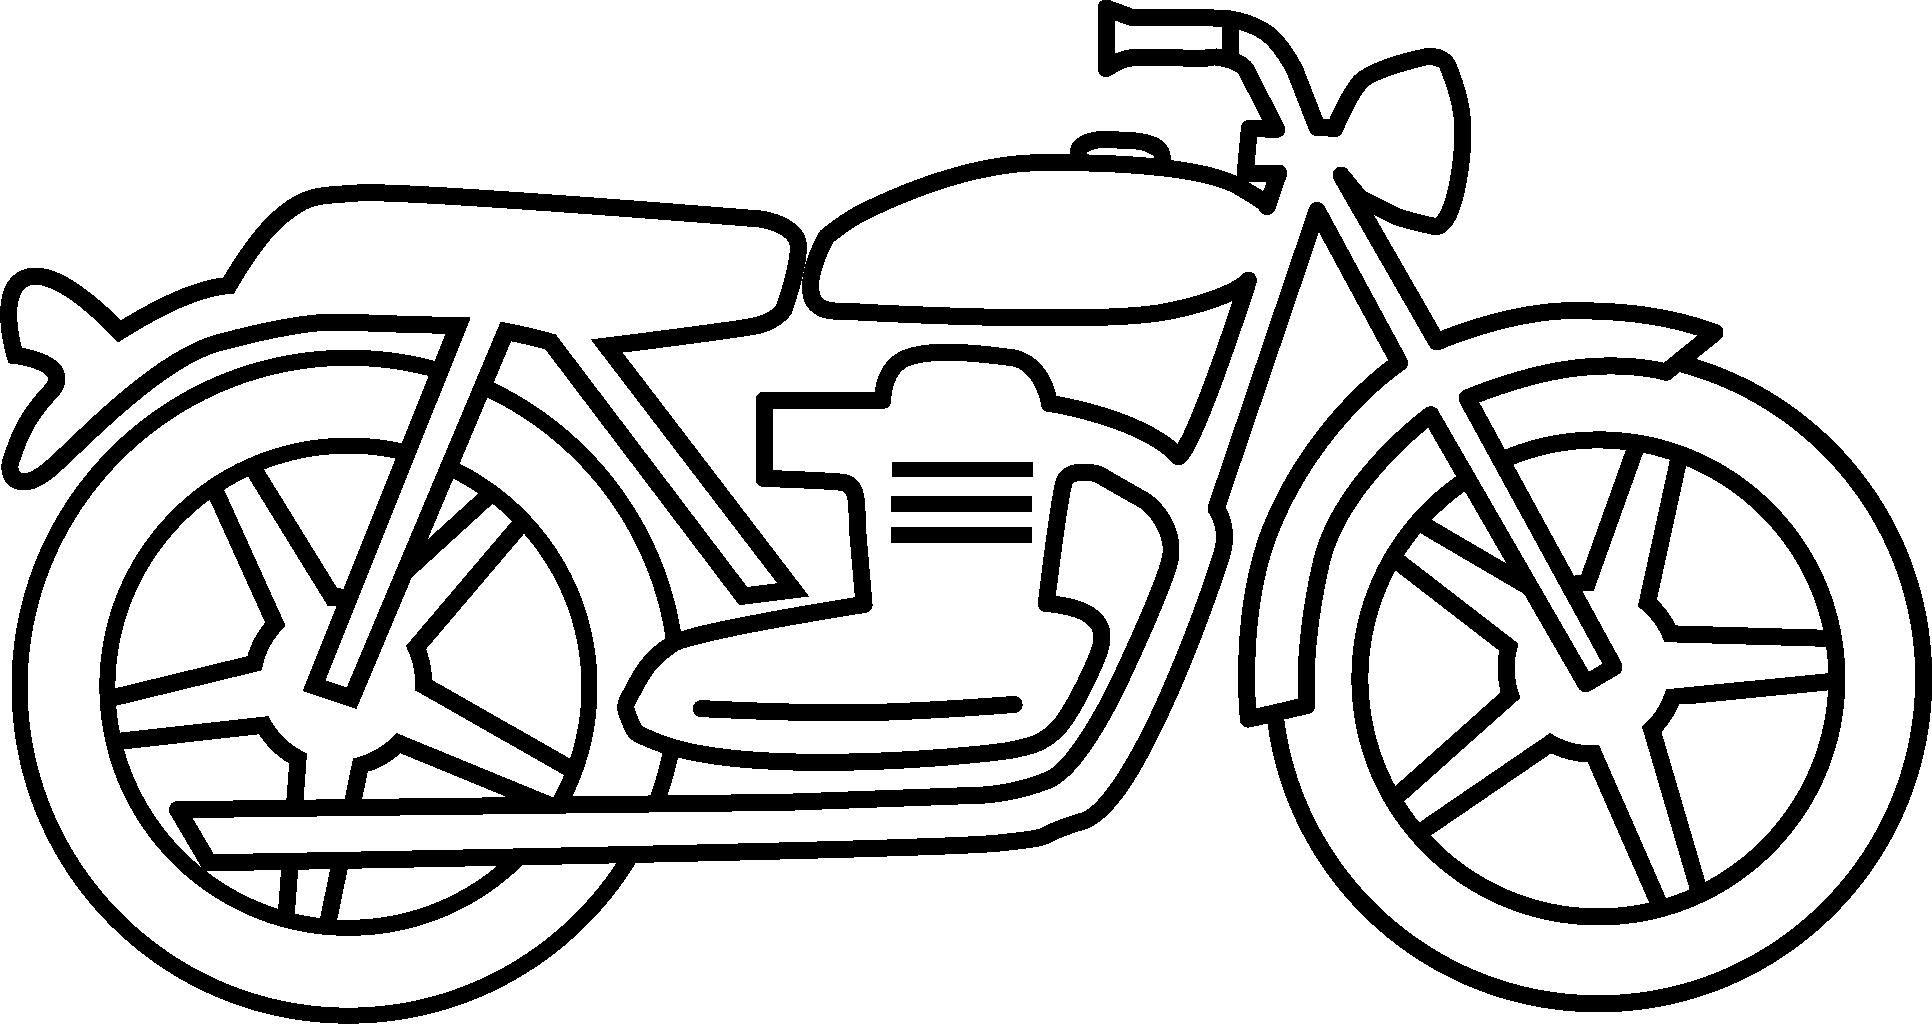 Motorcycle drawing at free for personal for Free online drawing